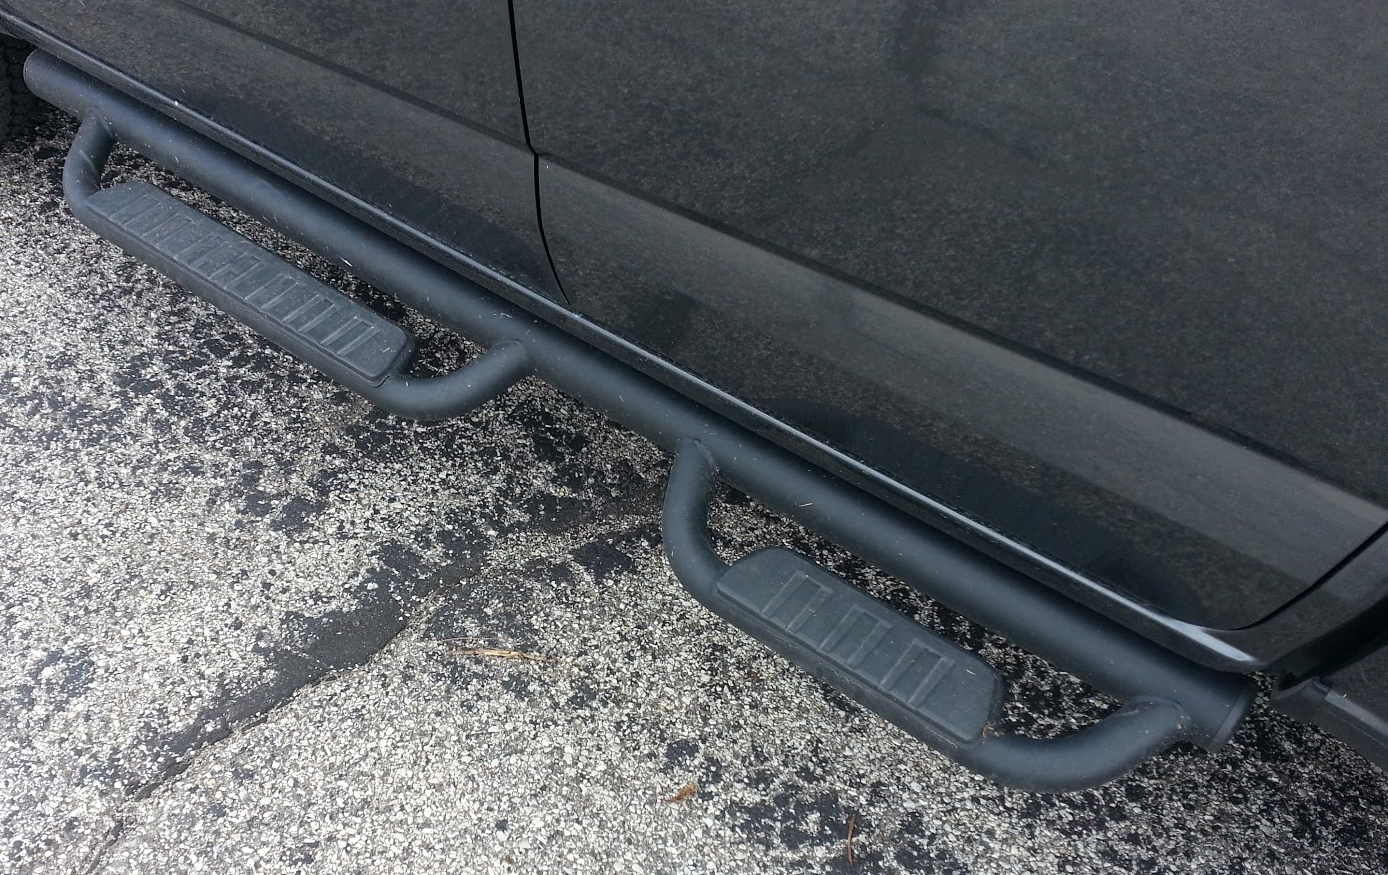 2016 Chevrolet Colorado running boards